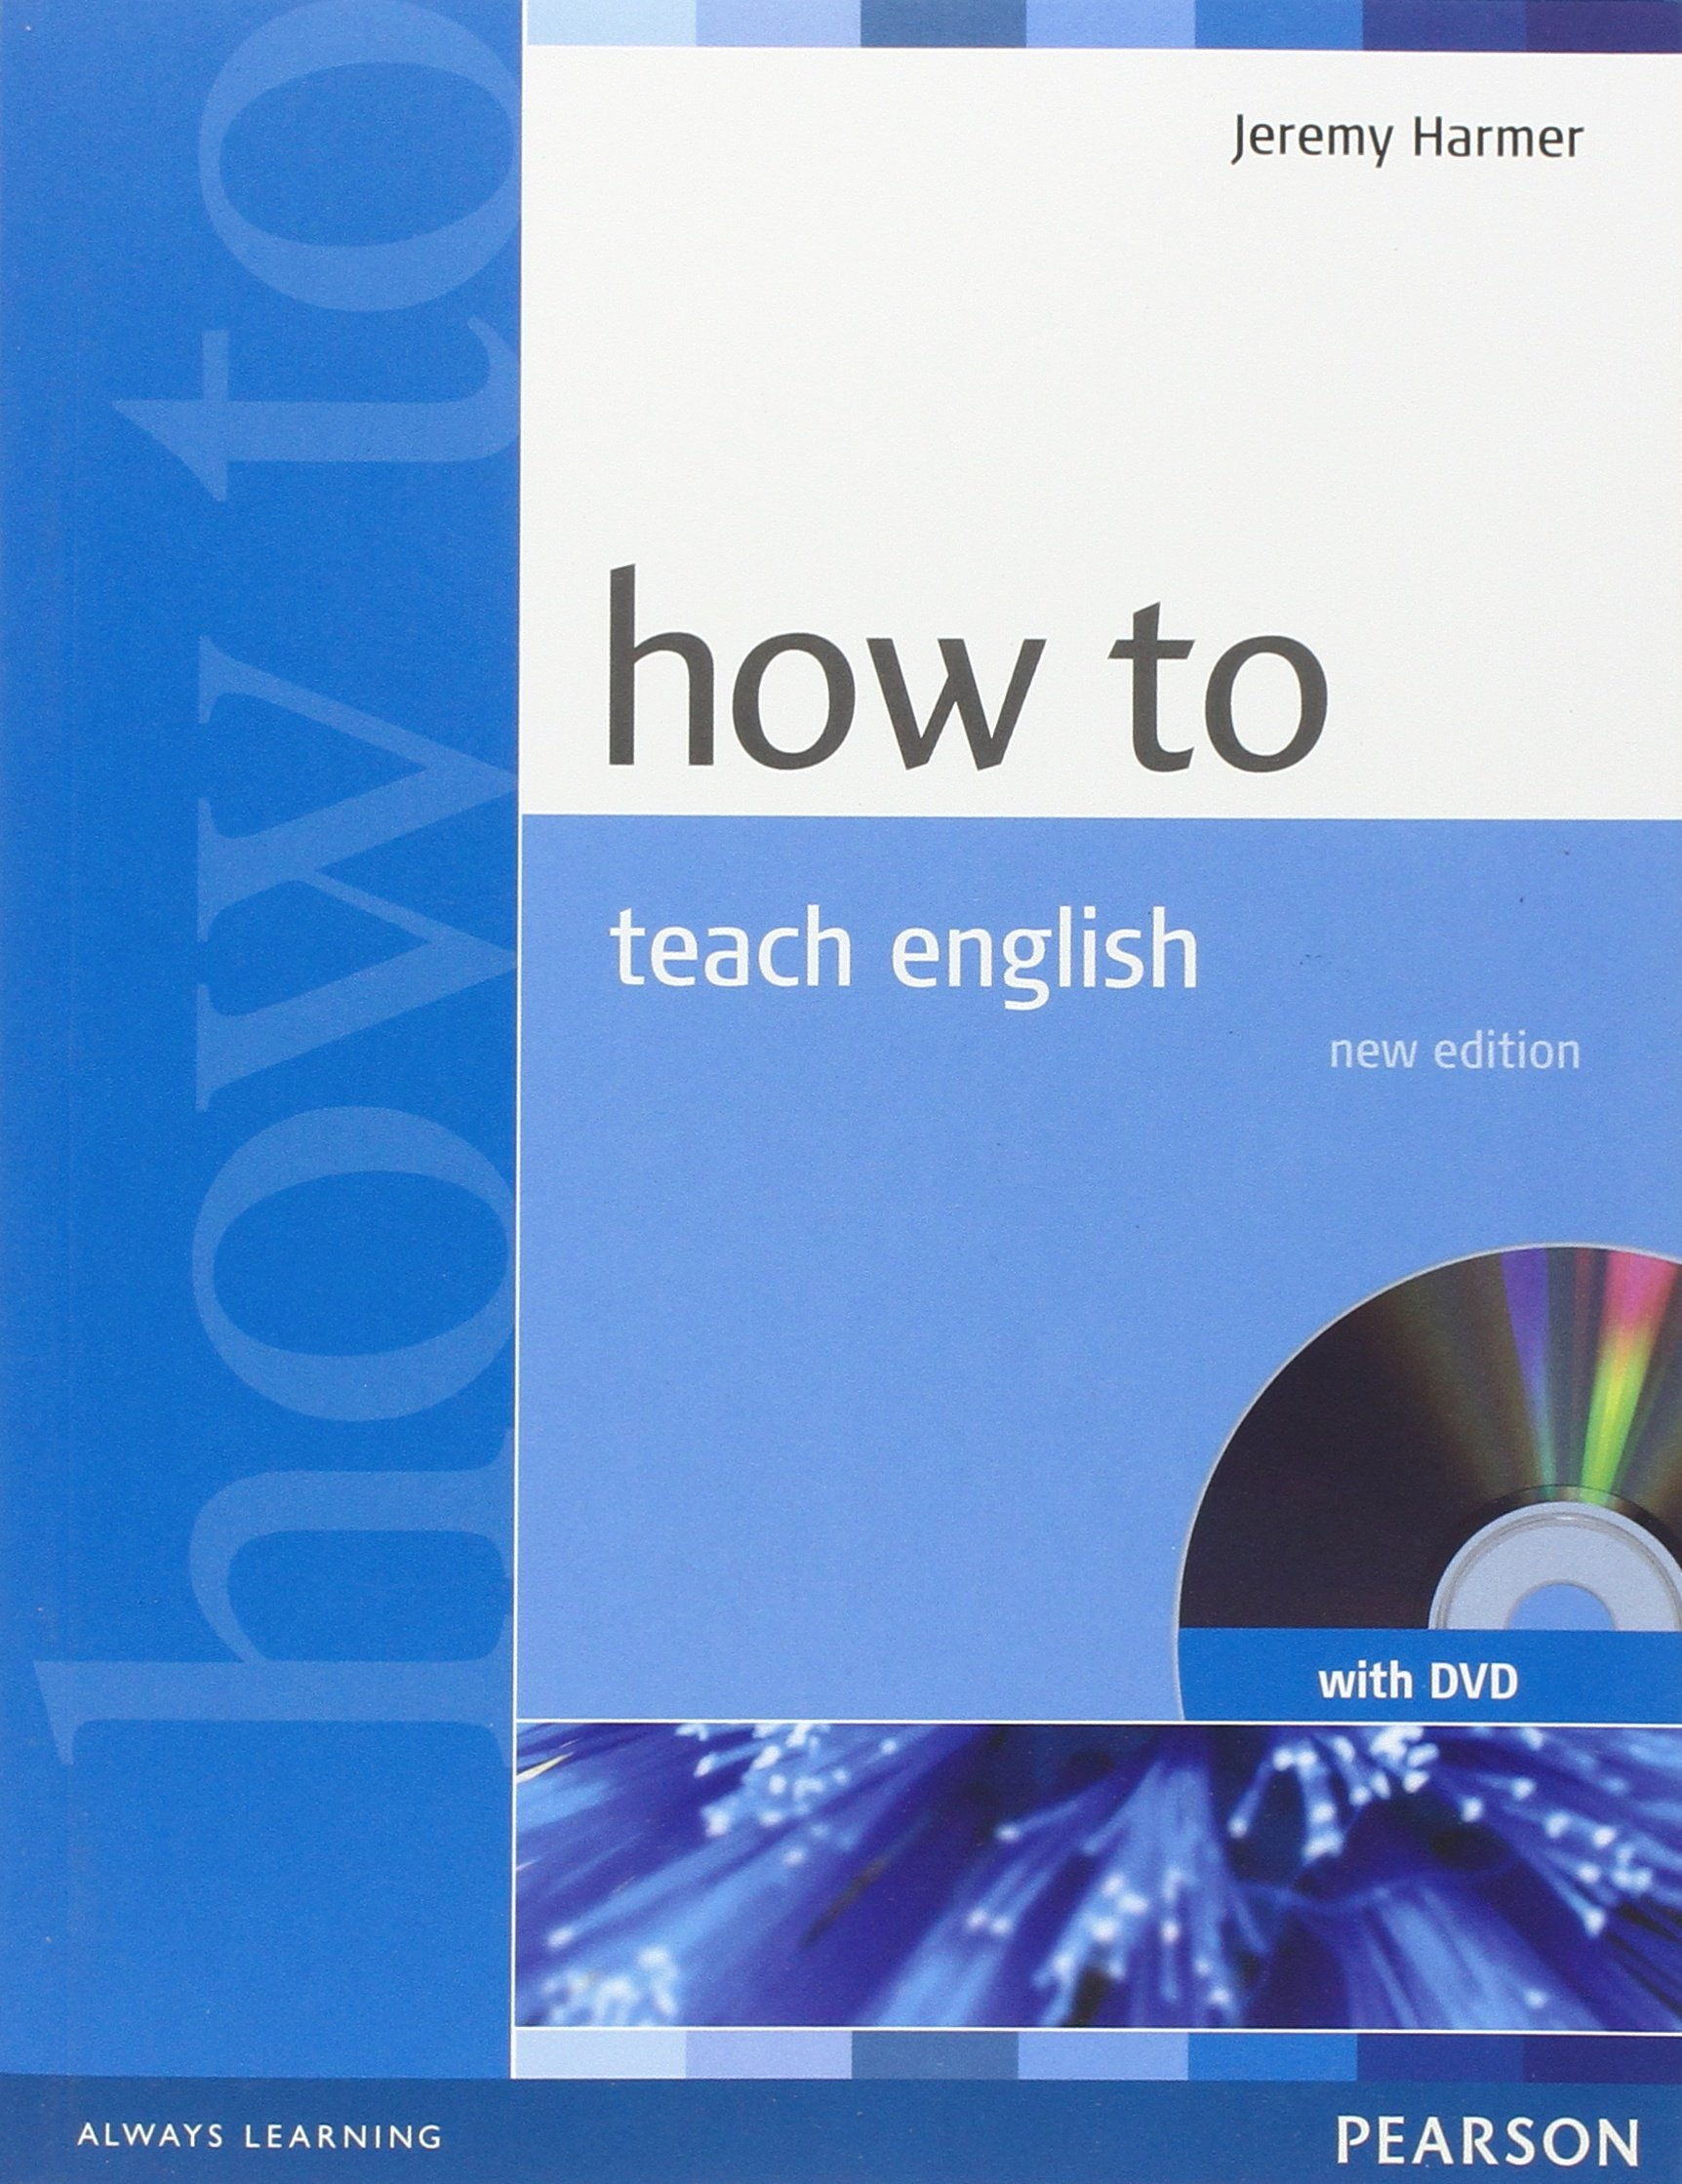 How to Teach Eng NE Bk/DVD Pack by Harmer, Jeremy